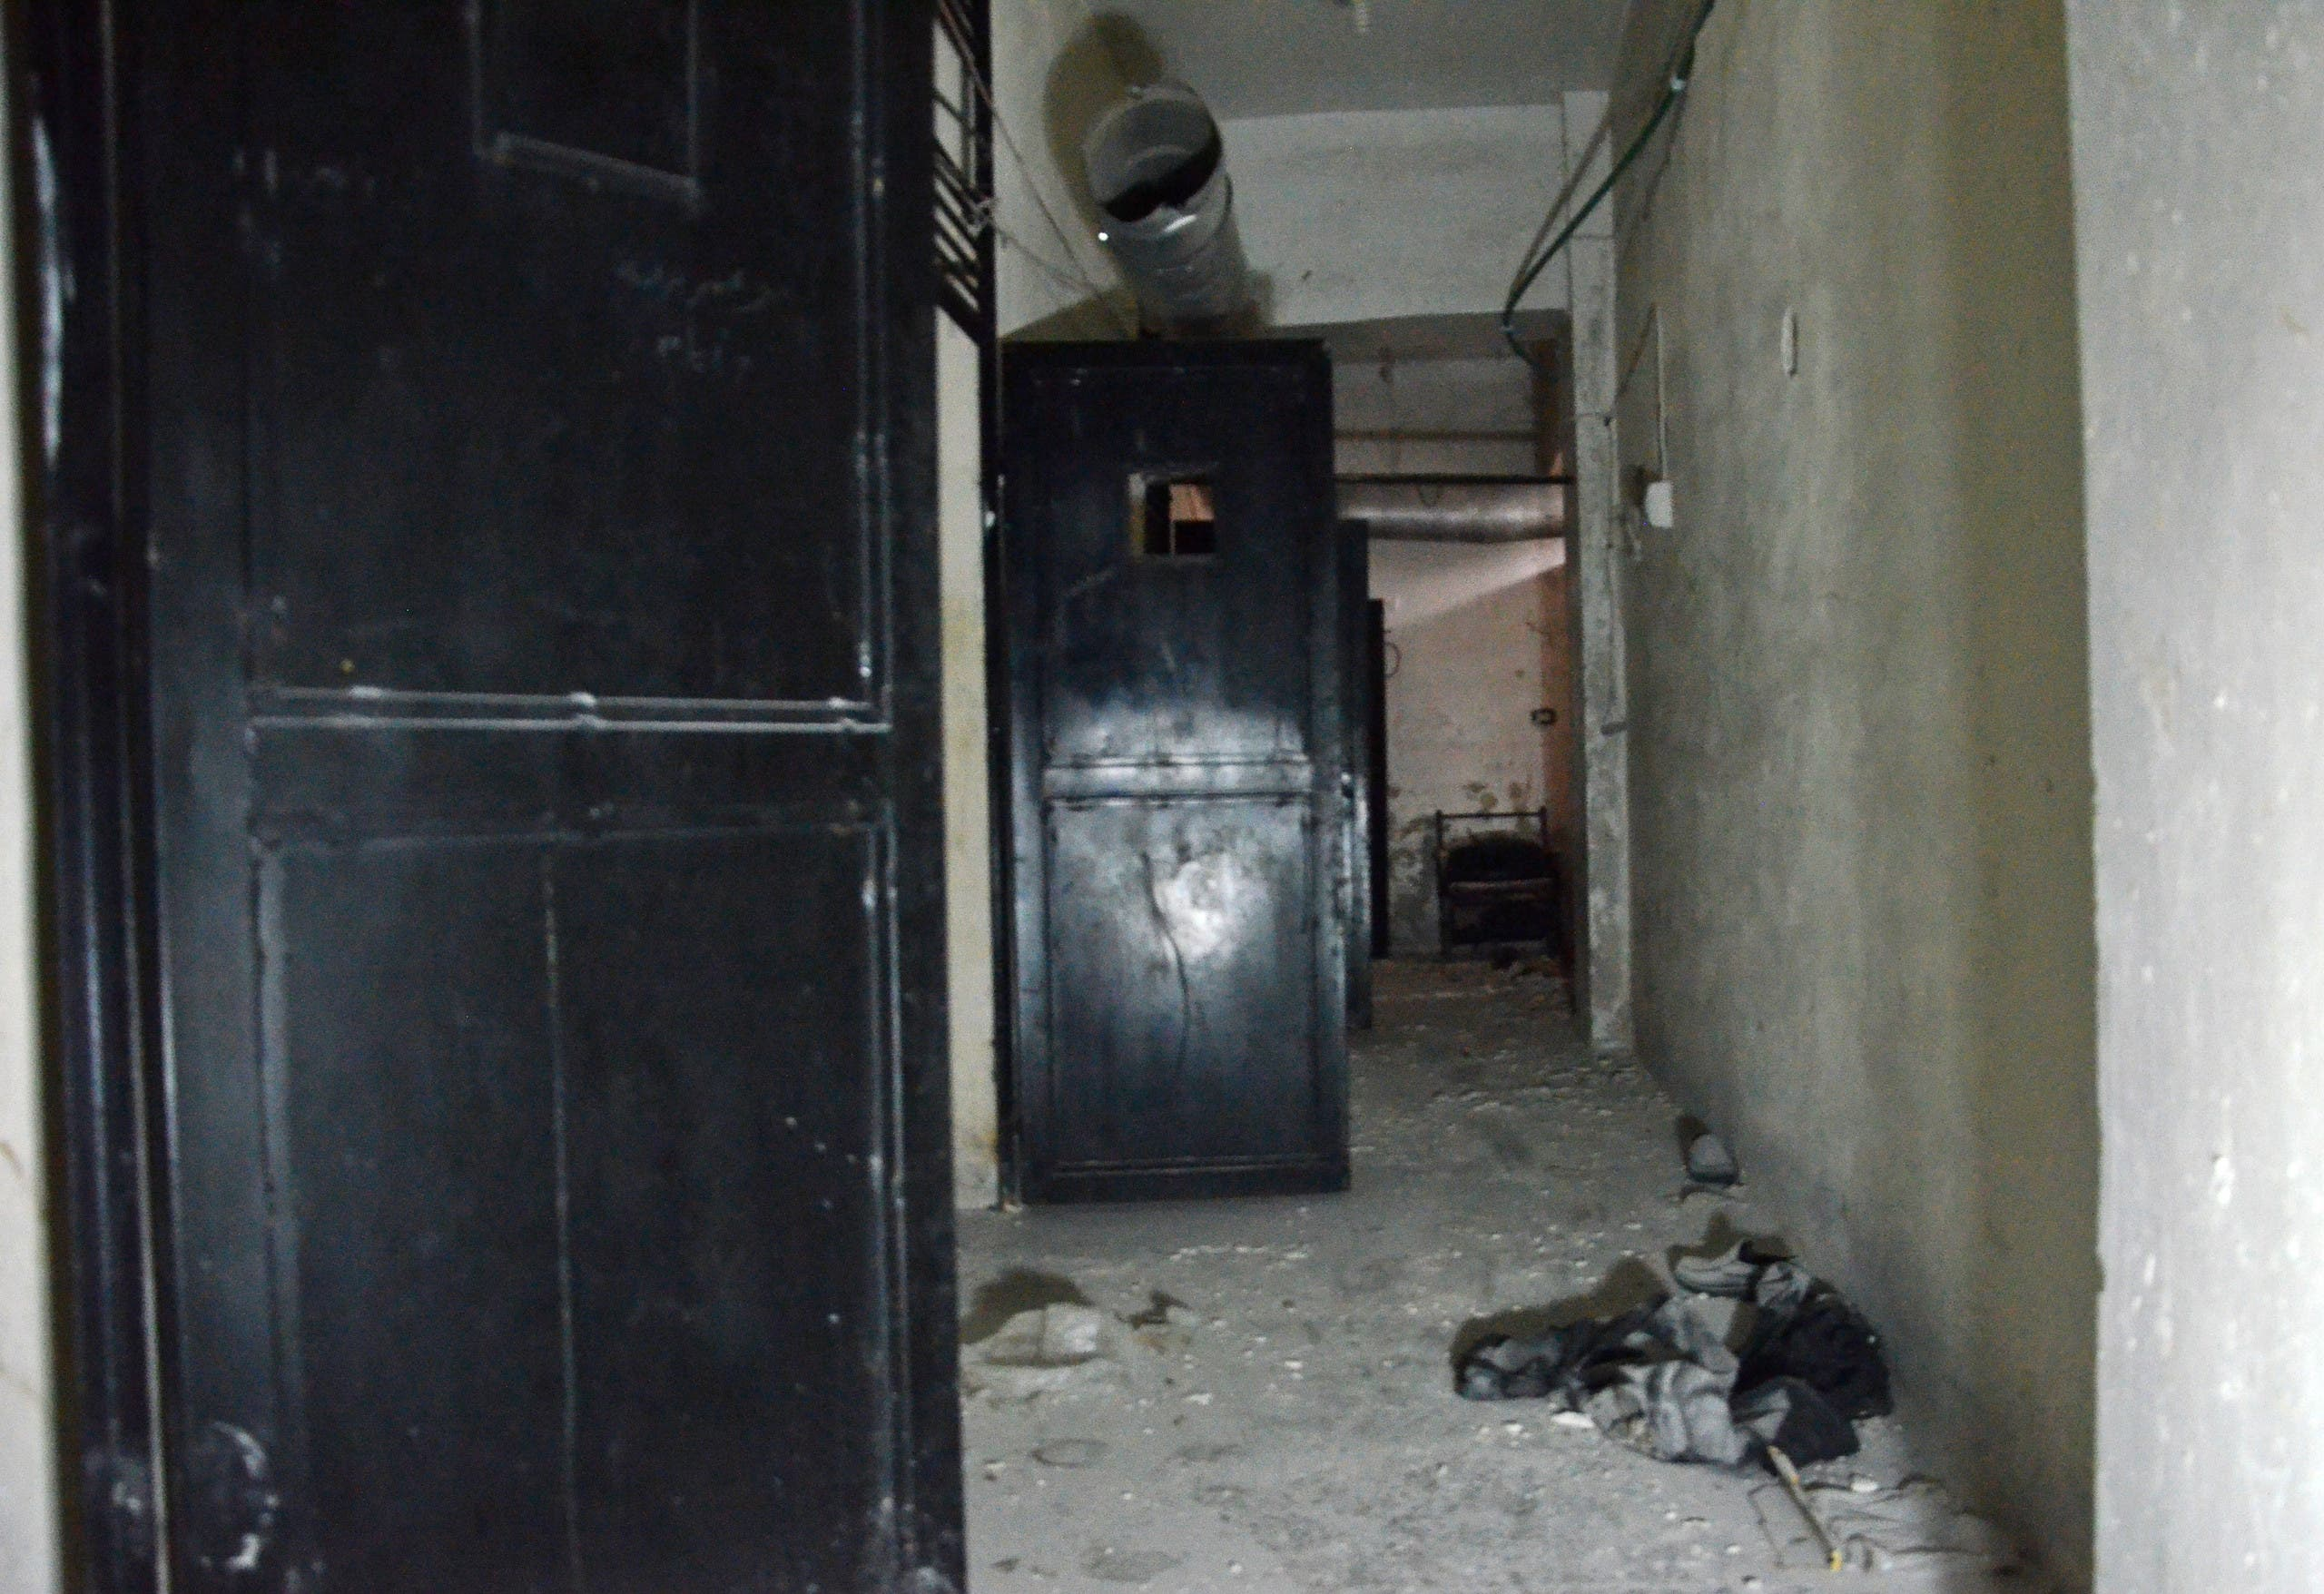 A picture taken on March 2, 2017 shows the open cell-doors in a hallway in an Islamic State (IS) group prison in the northern Syrian town of al-Bab, after Turkish-backed rebels announced the recapture of the town from IS.